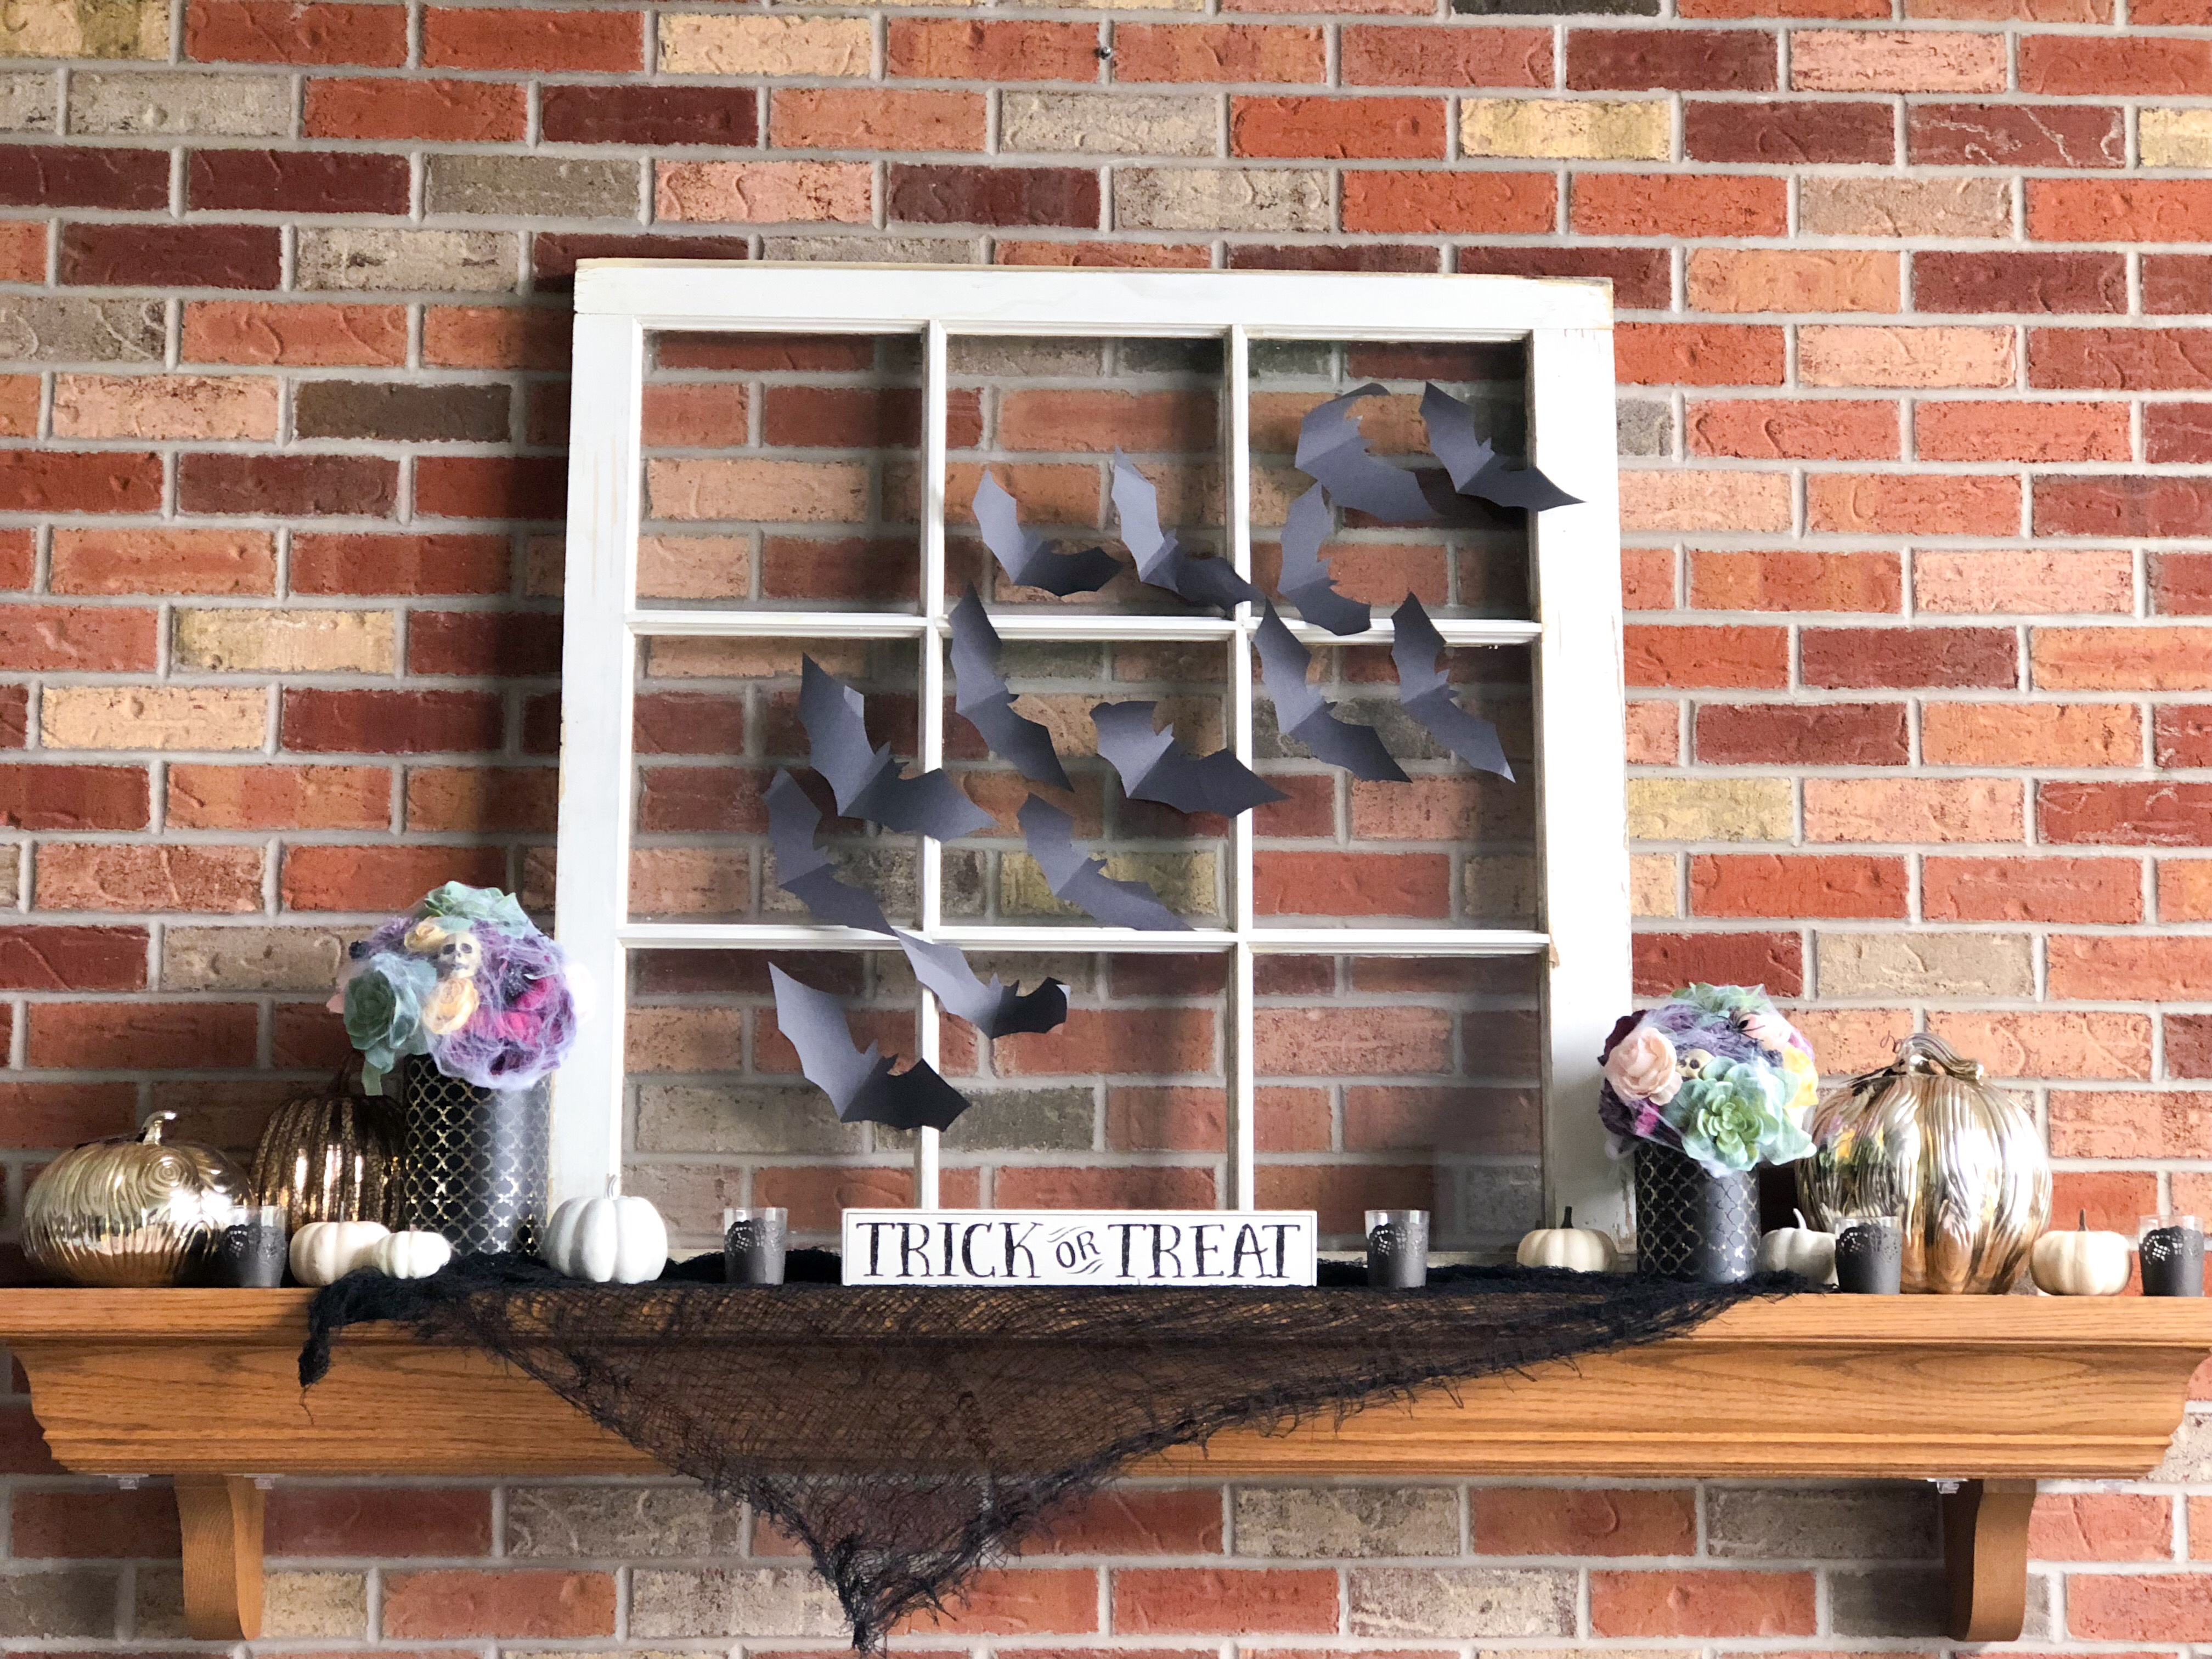 Black cheese cloth draped over mantle with trick or treat sign, old window covered in black paper bats with colorful floral arrangements with skulls and spiders